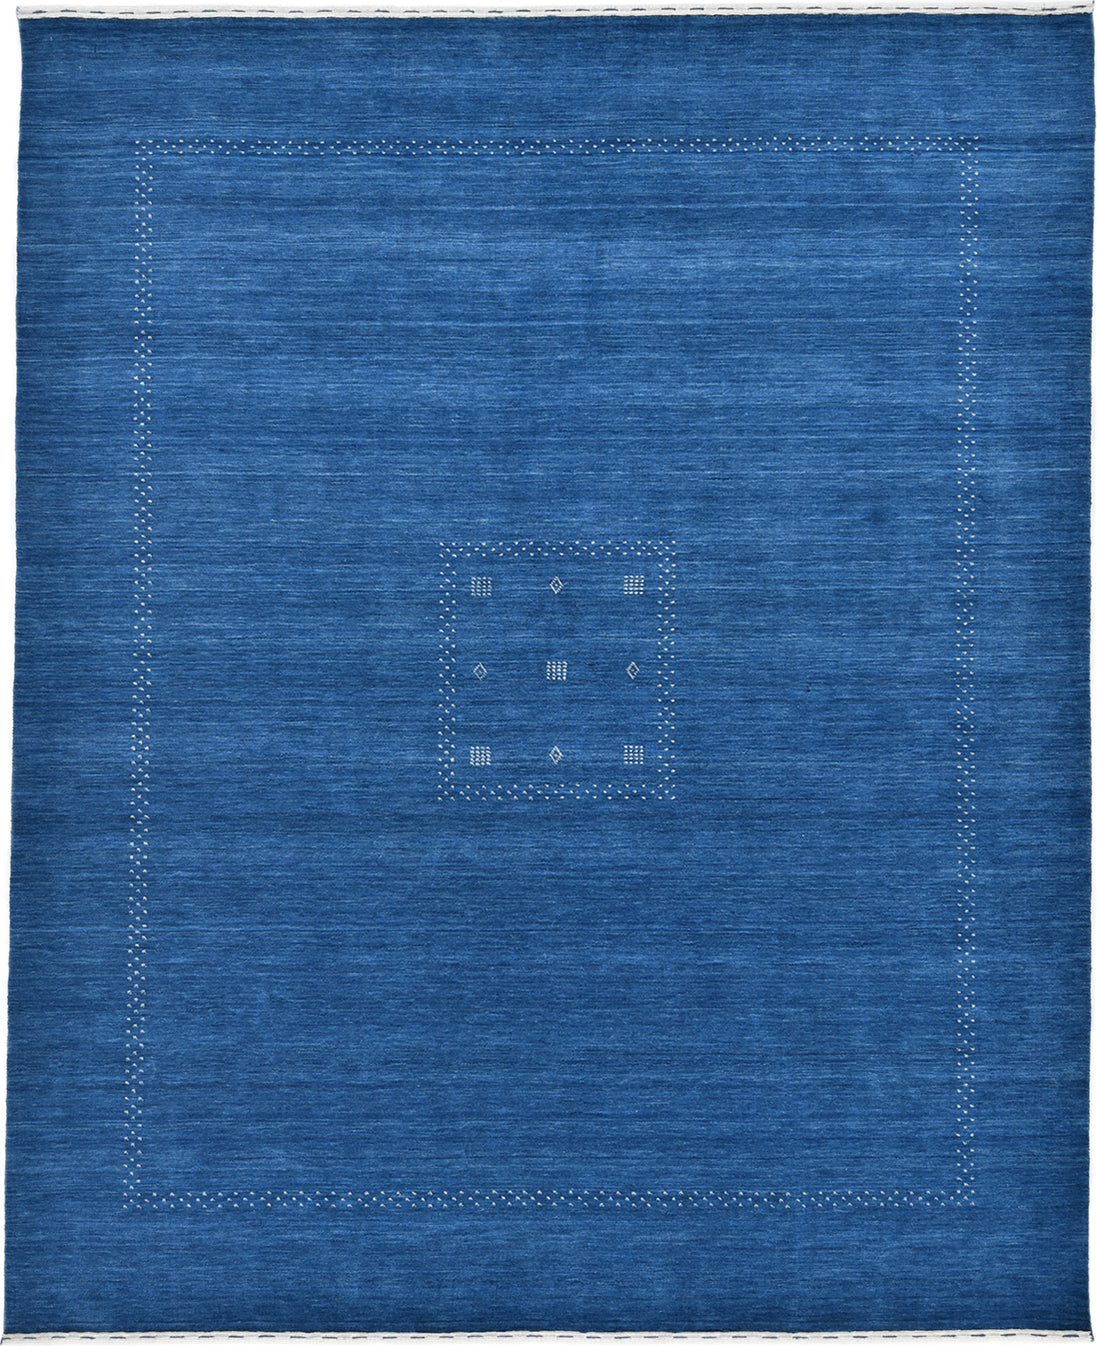 Solo Rugs Gabbeh M8049-17 Blue Area Rug main image